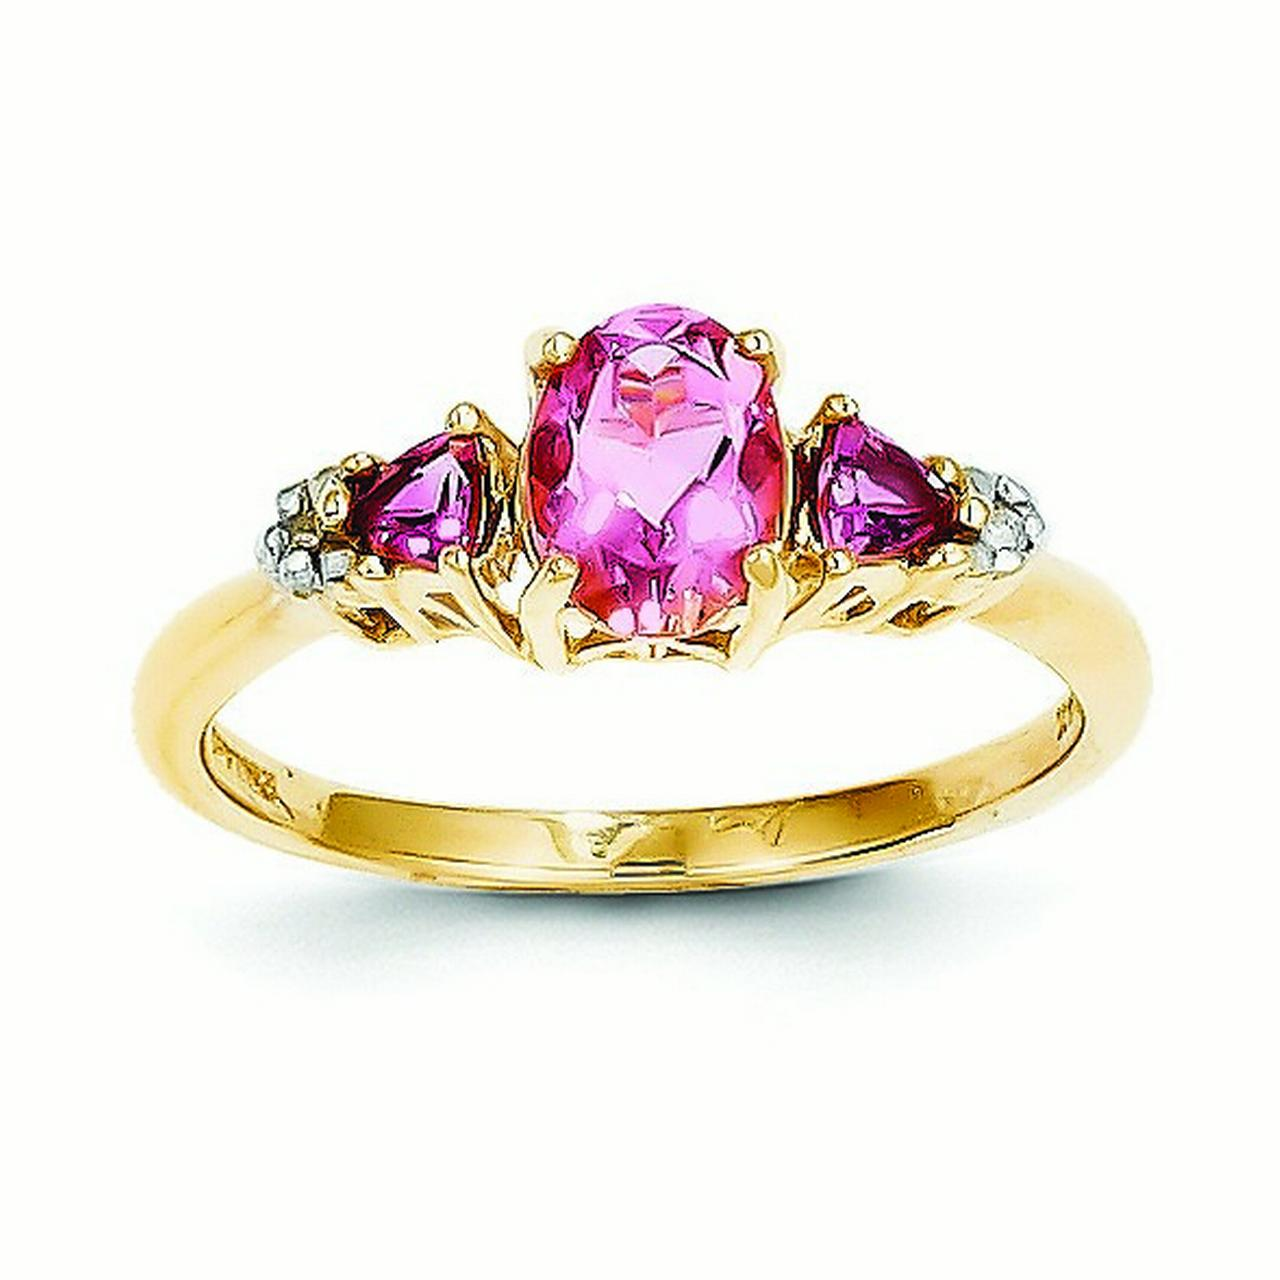 14k Yellow Gold Polished Open back Pink Tourmaline and Diamond Ring .02 dwt by Jewelryweb